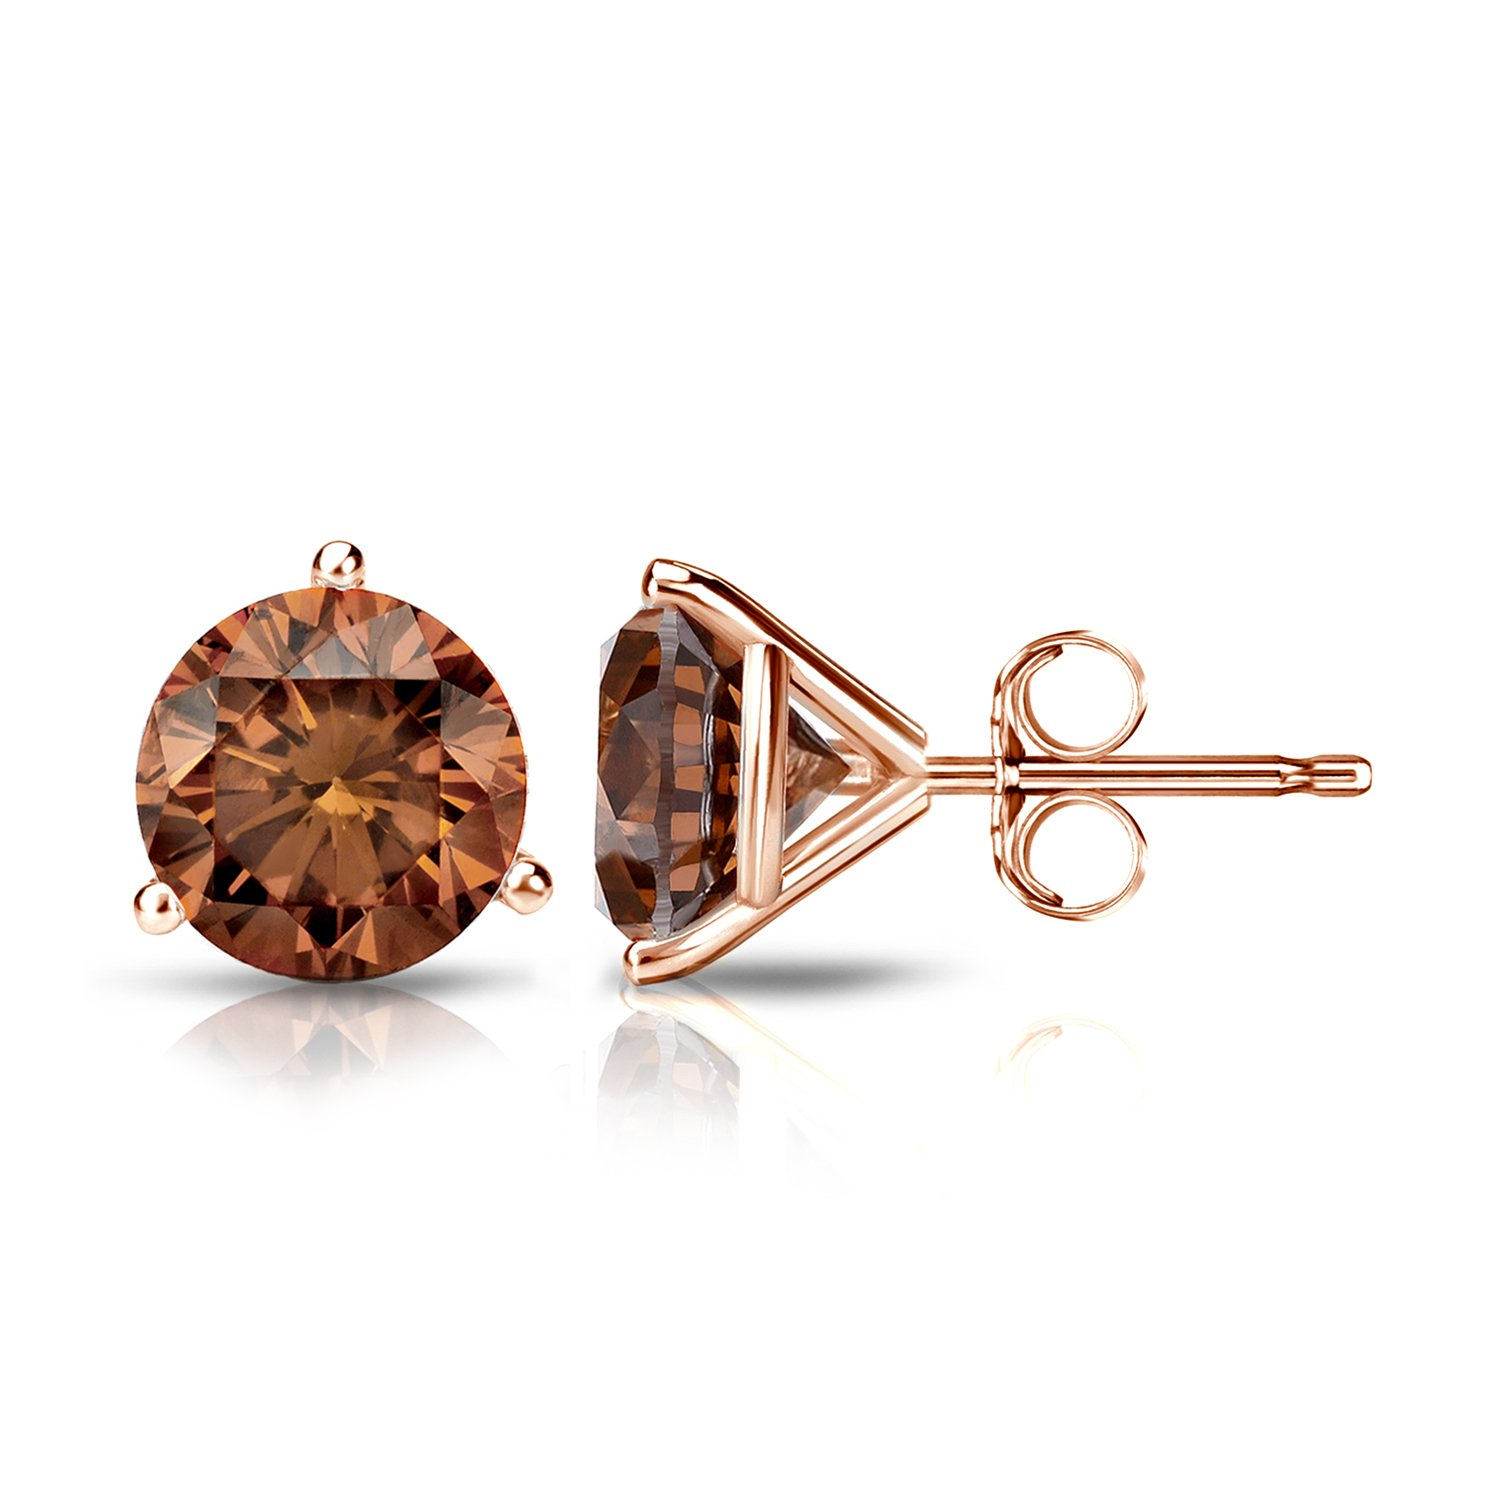 14k Rose Gold Round Brown Diamond 3-Prong Martini Stud Earrings (1 1/2 ct, Brown, SI1-SI2) Push-Back